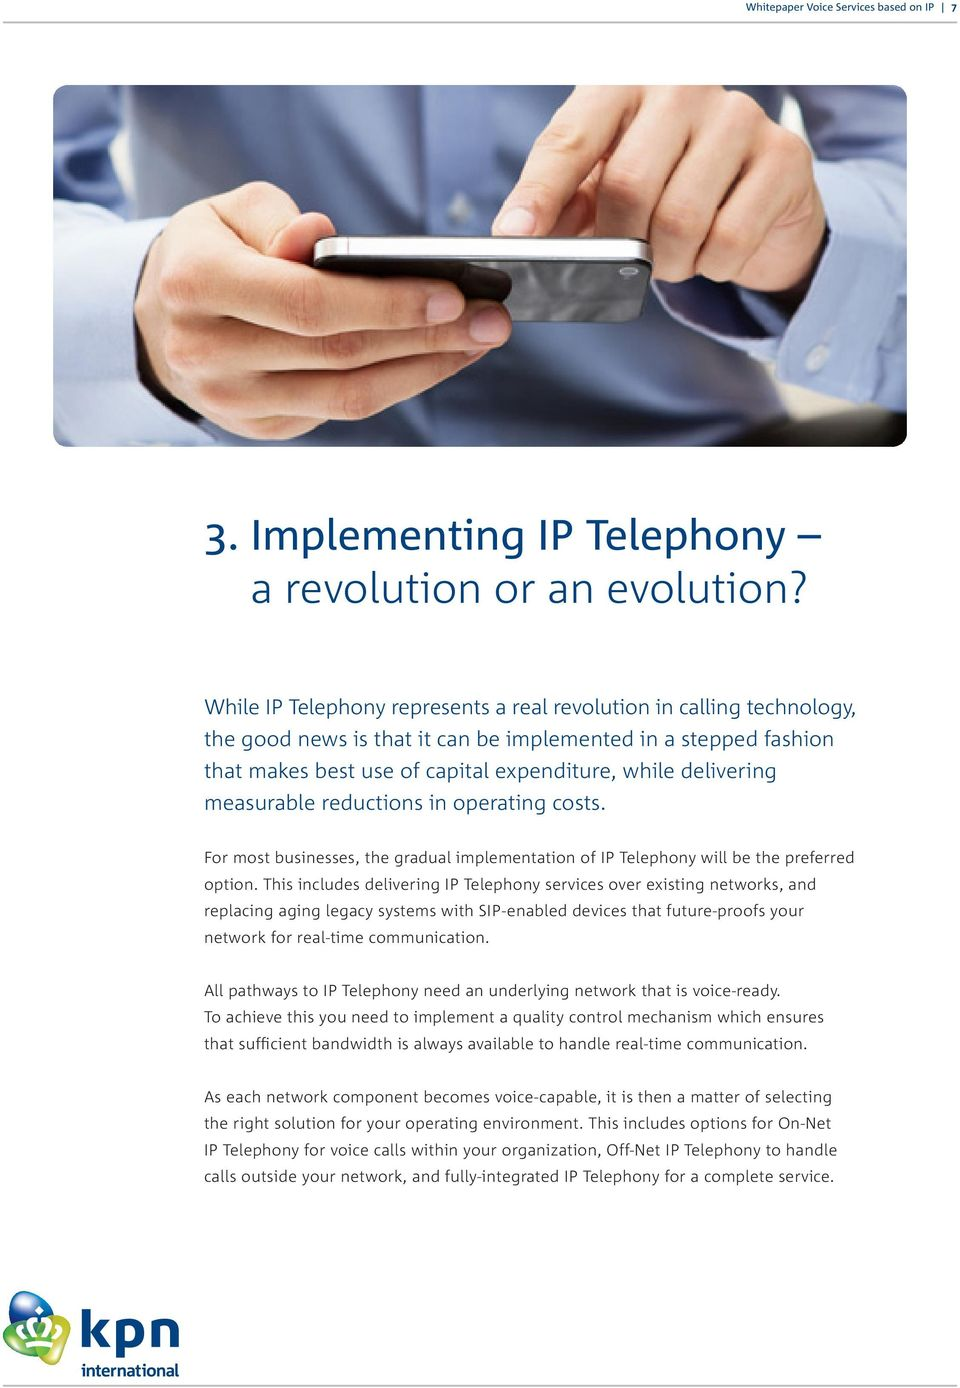 measurable reductions in operating costs. For most businesses, the gradual implementation of IP Telephony will be the preferred option.